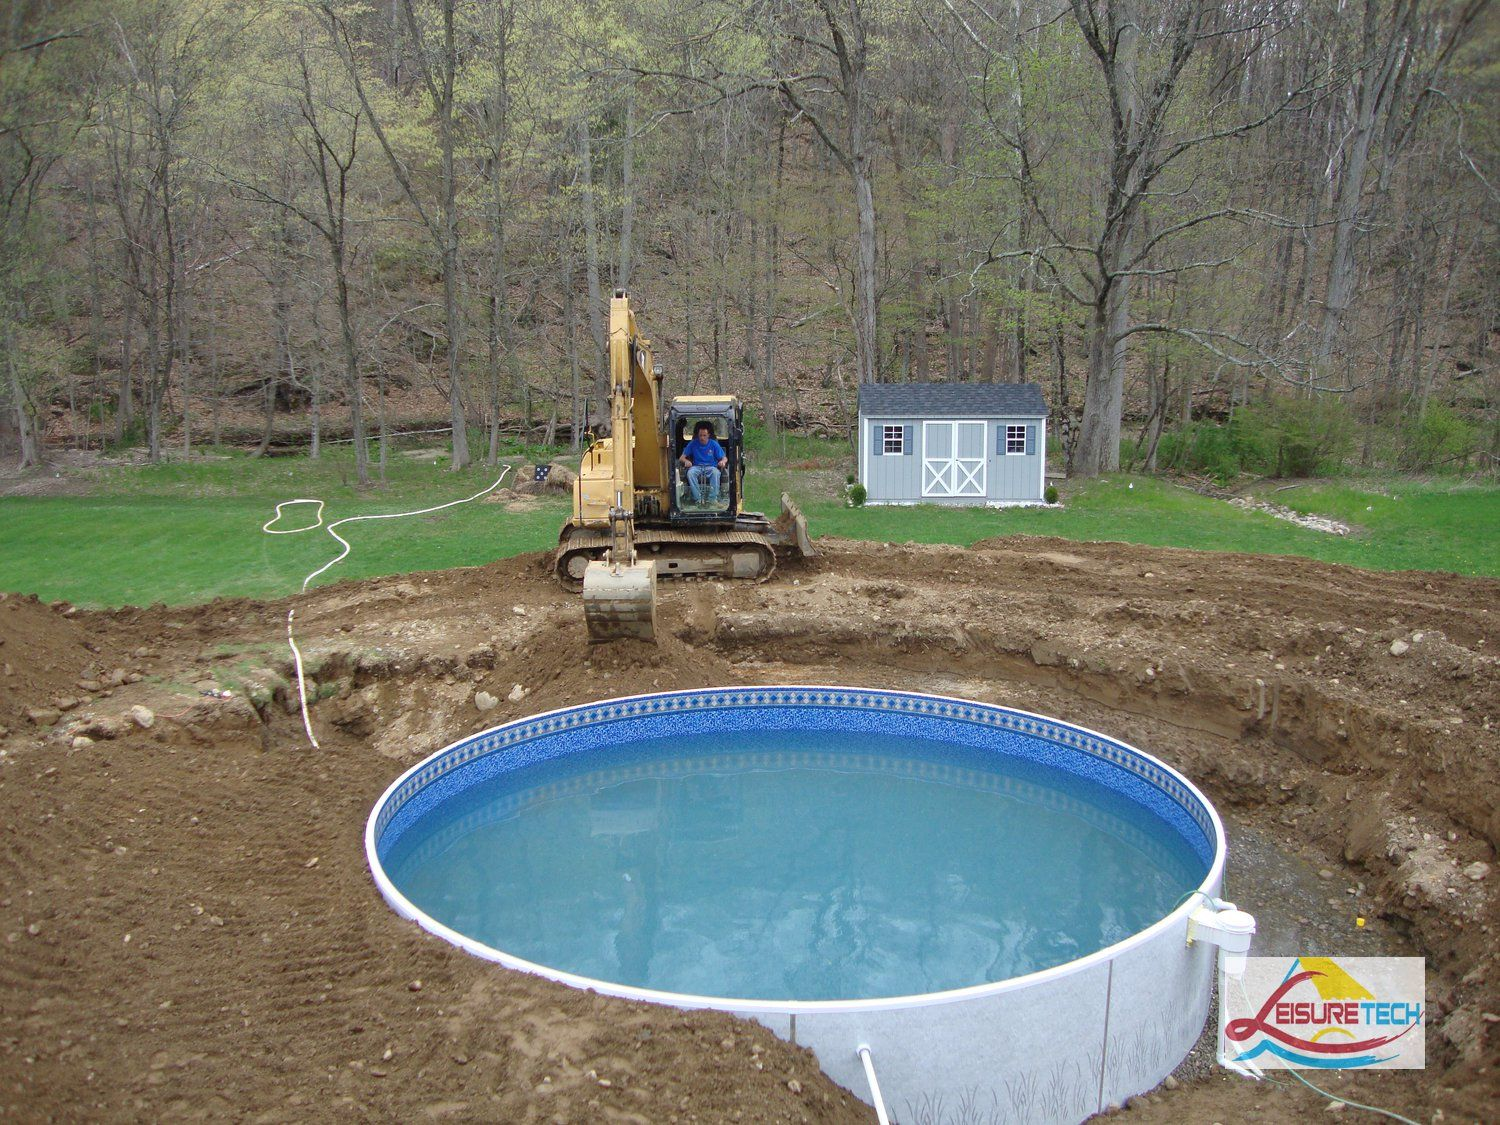 ways to camouflage an above ground pool image swimming pool design inground pools 1500x1125